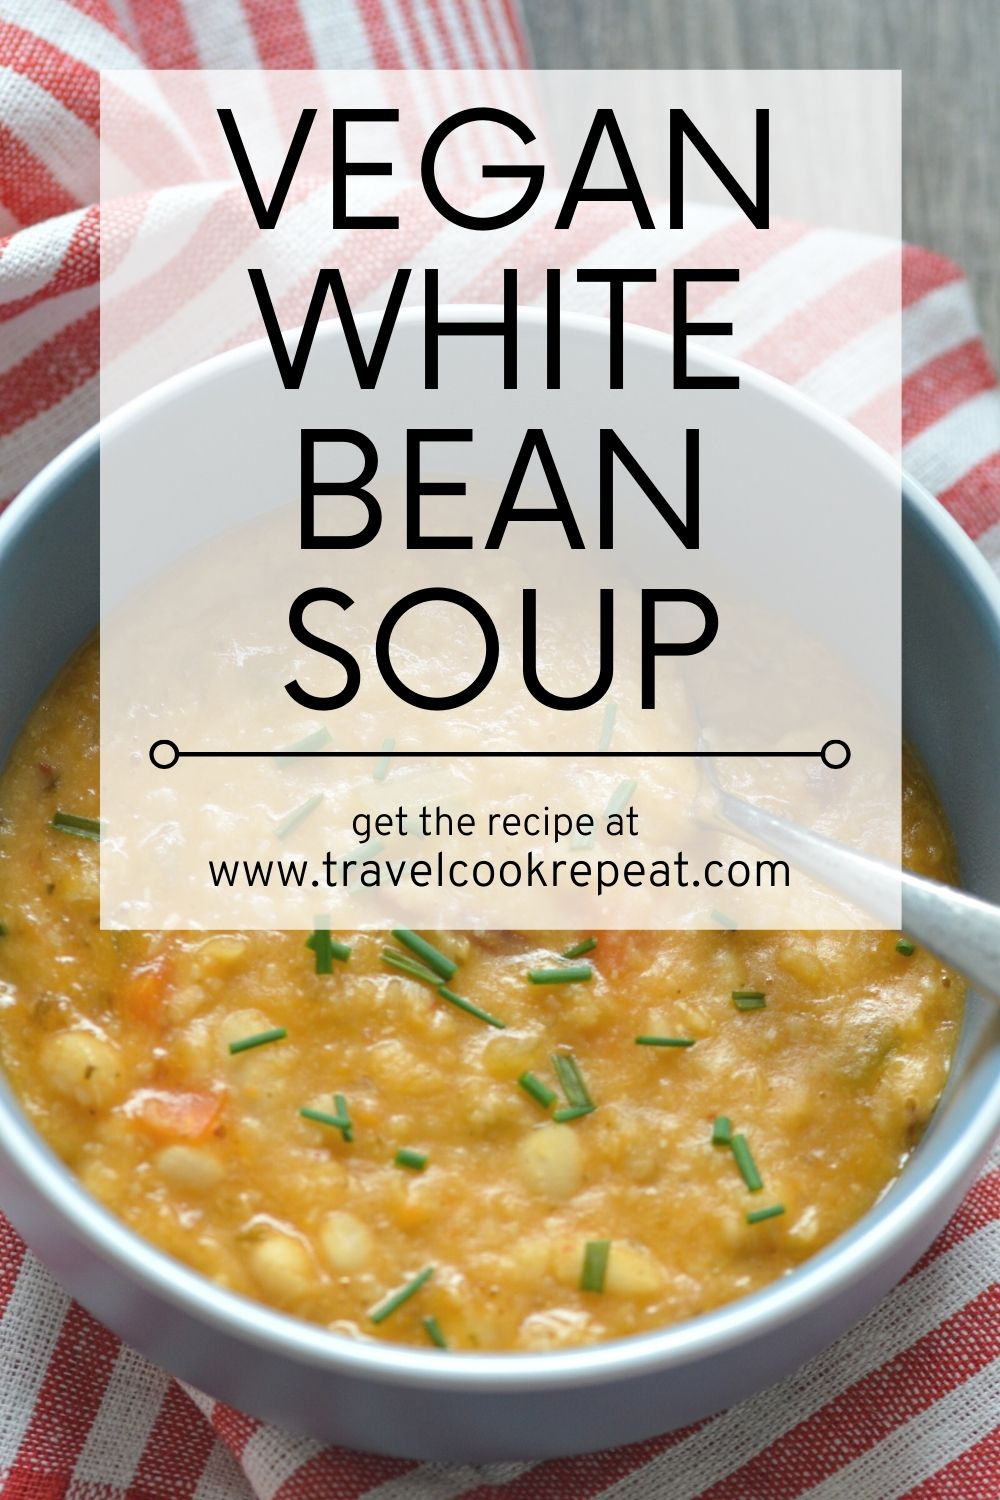 Vegan White Bean Soup with Chipotle